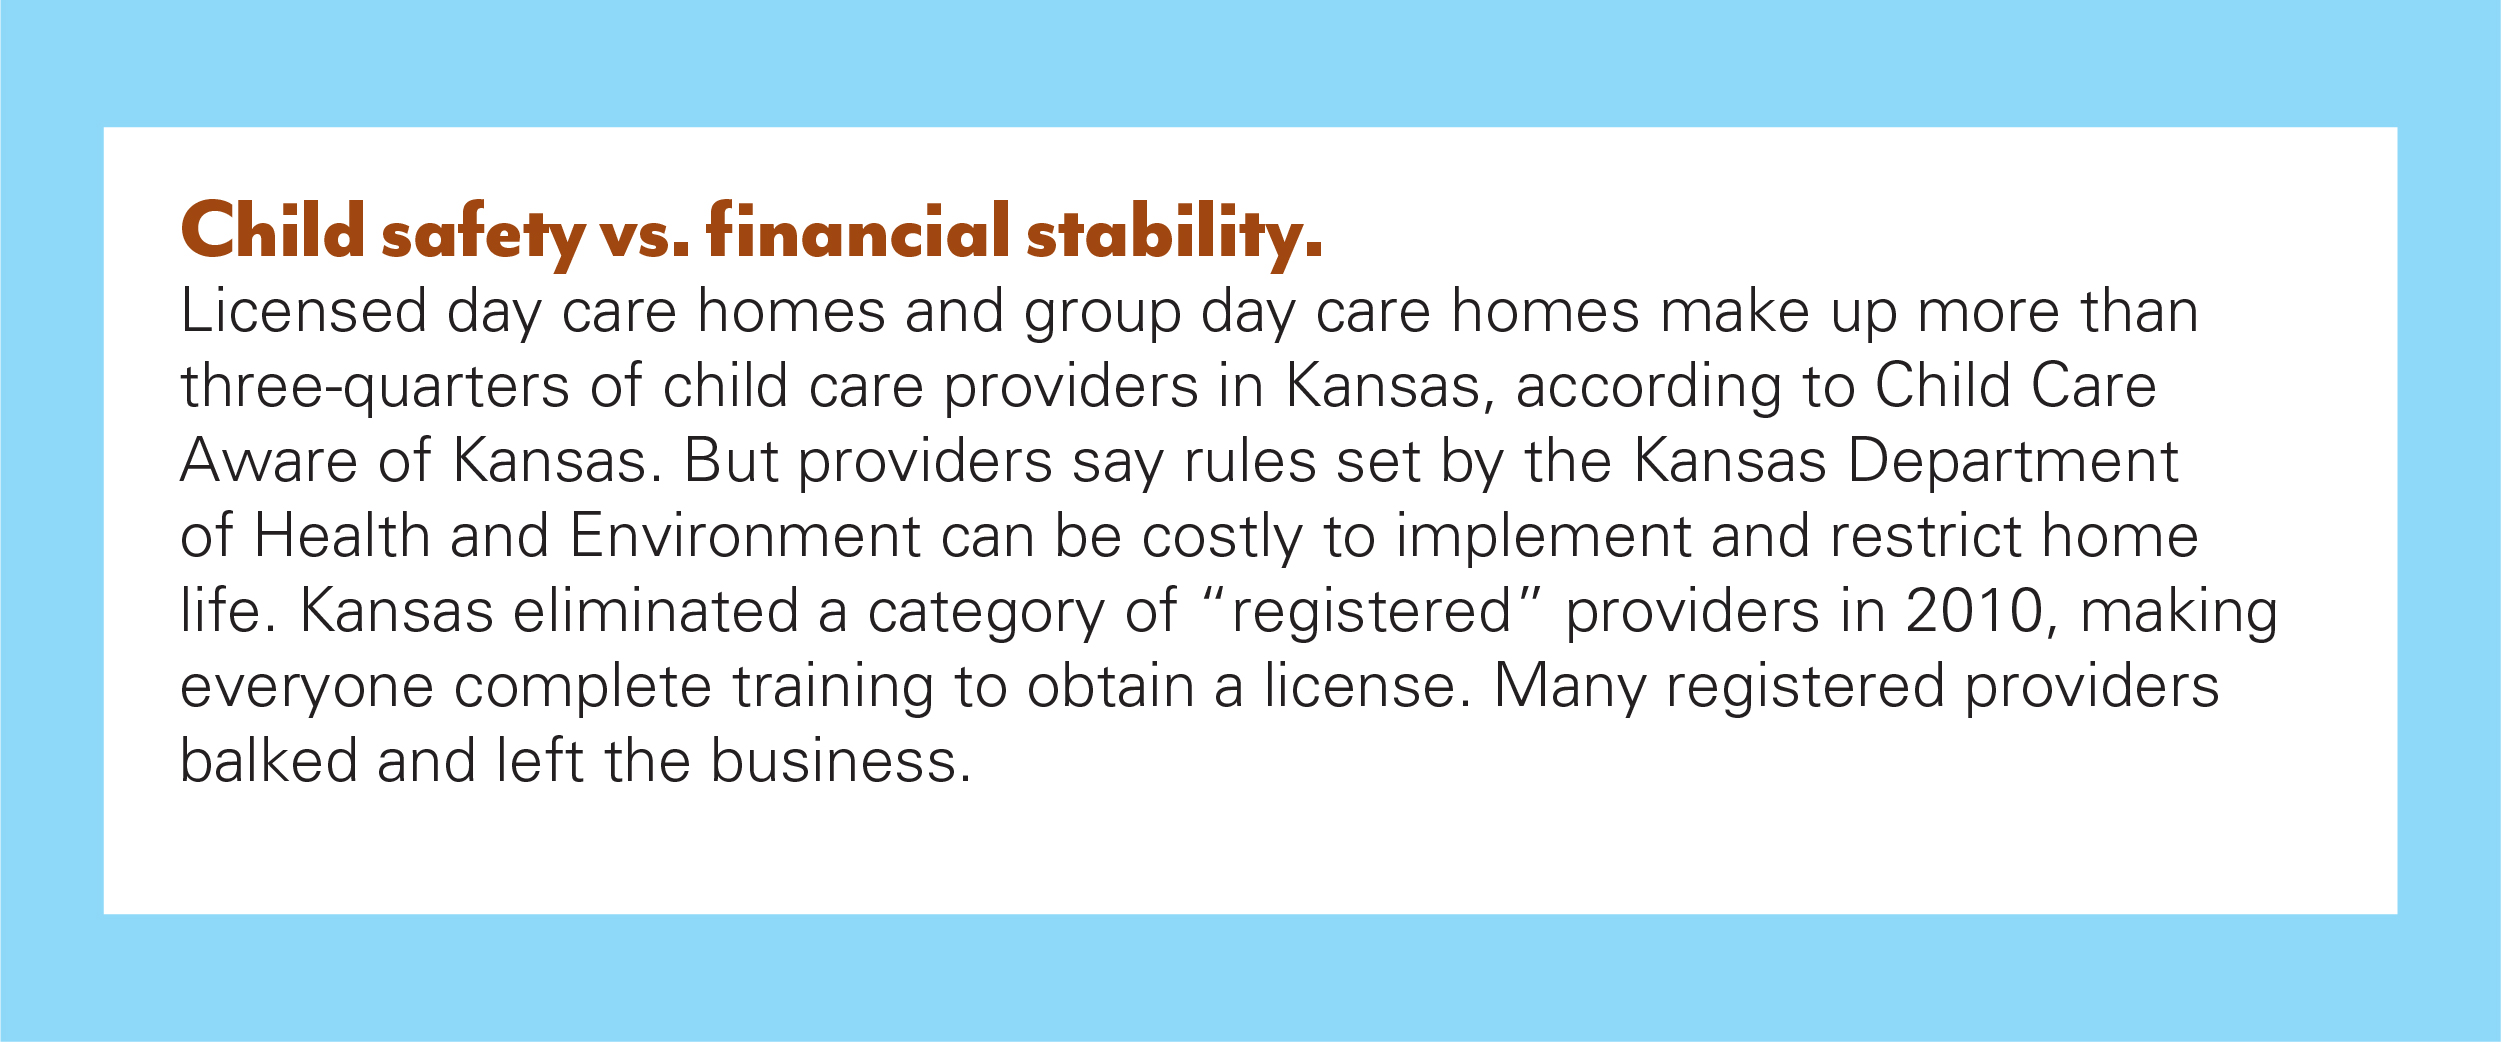 One of the barriers to child care in Kansas